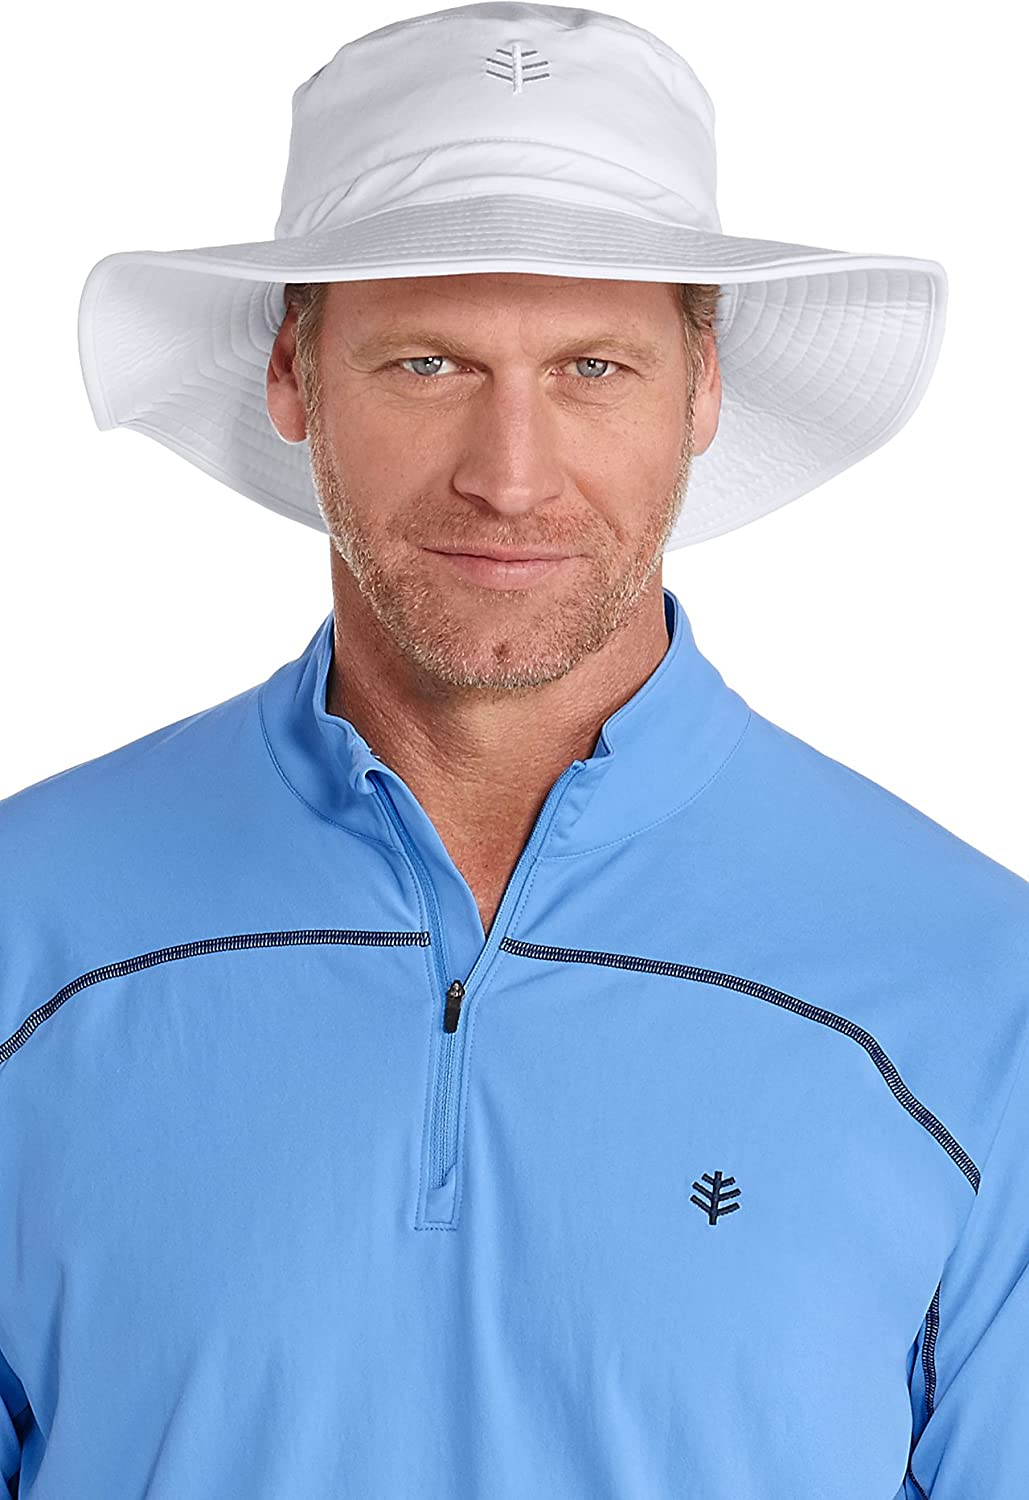 Sun Protective Coolibar UPF 50 Mens Nate Chlorine Resistant Bucket Hat